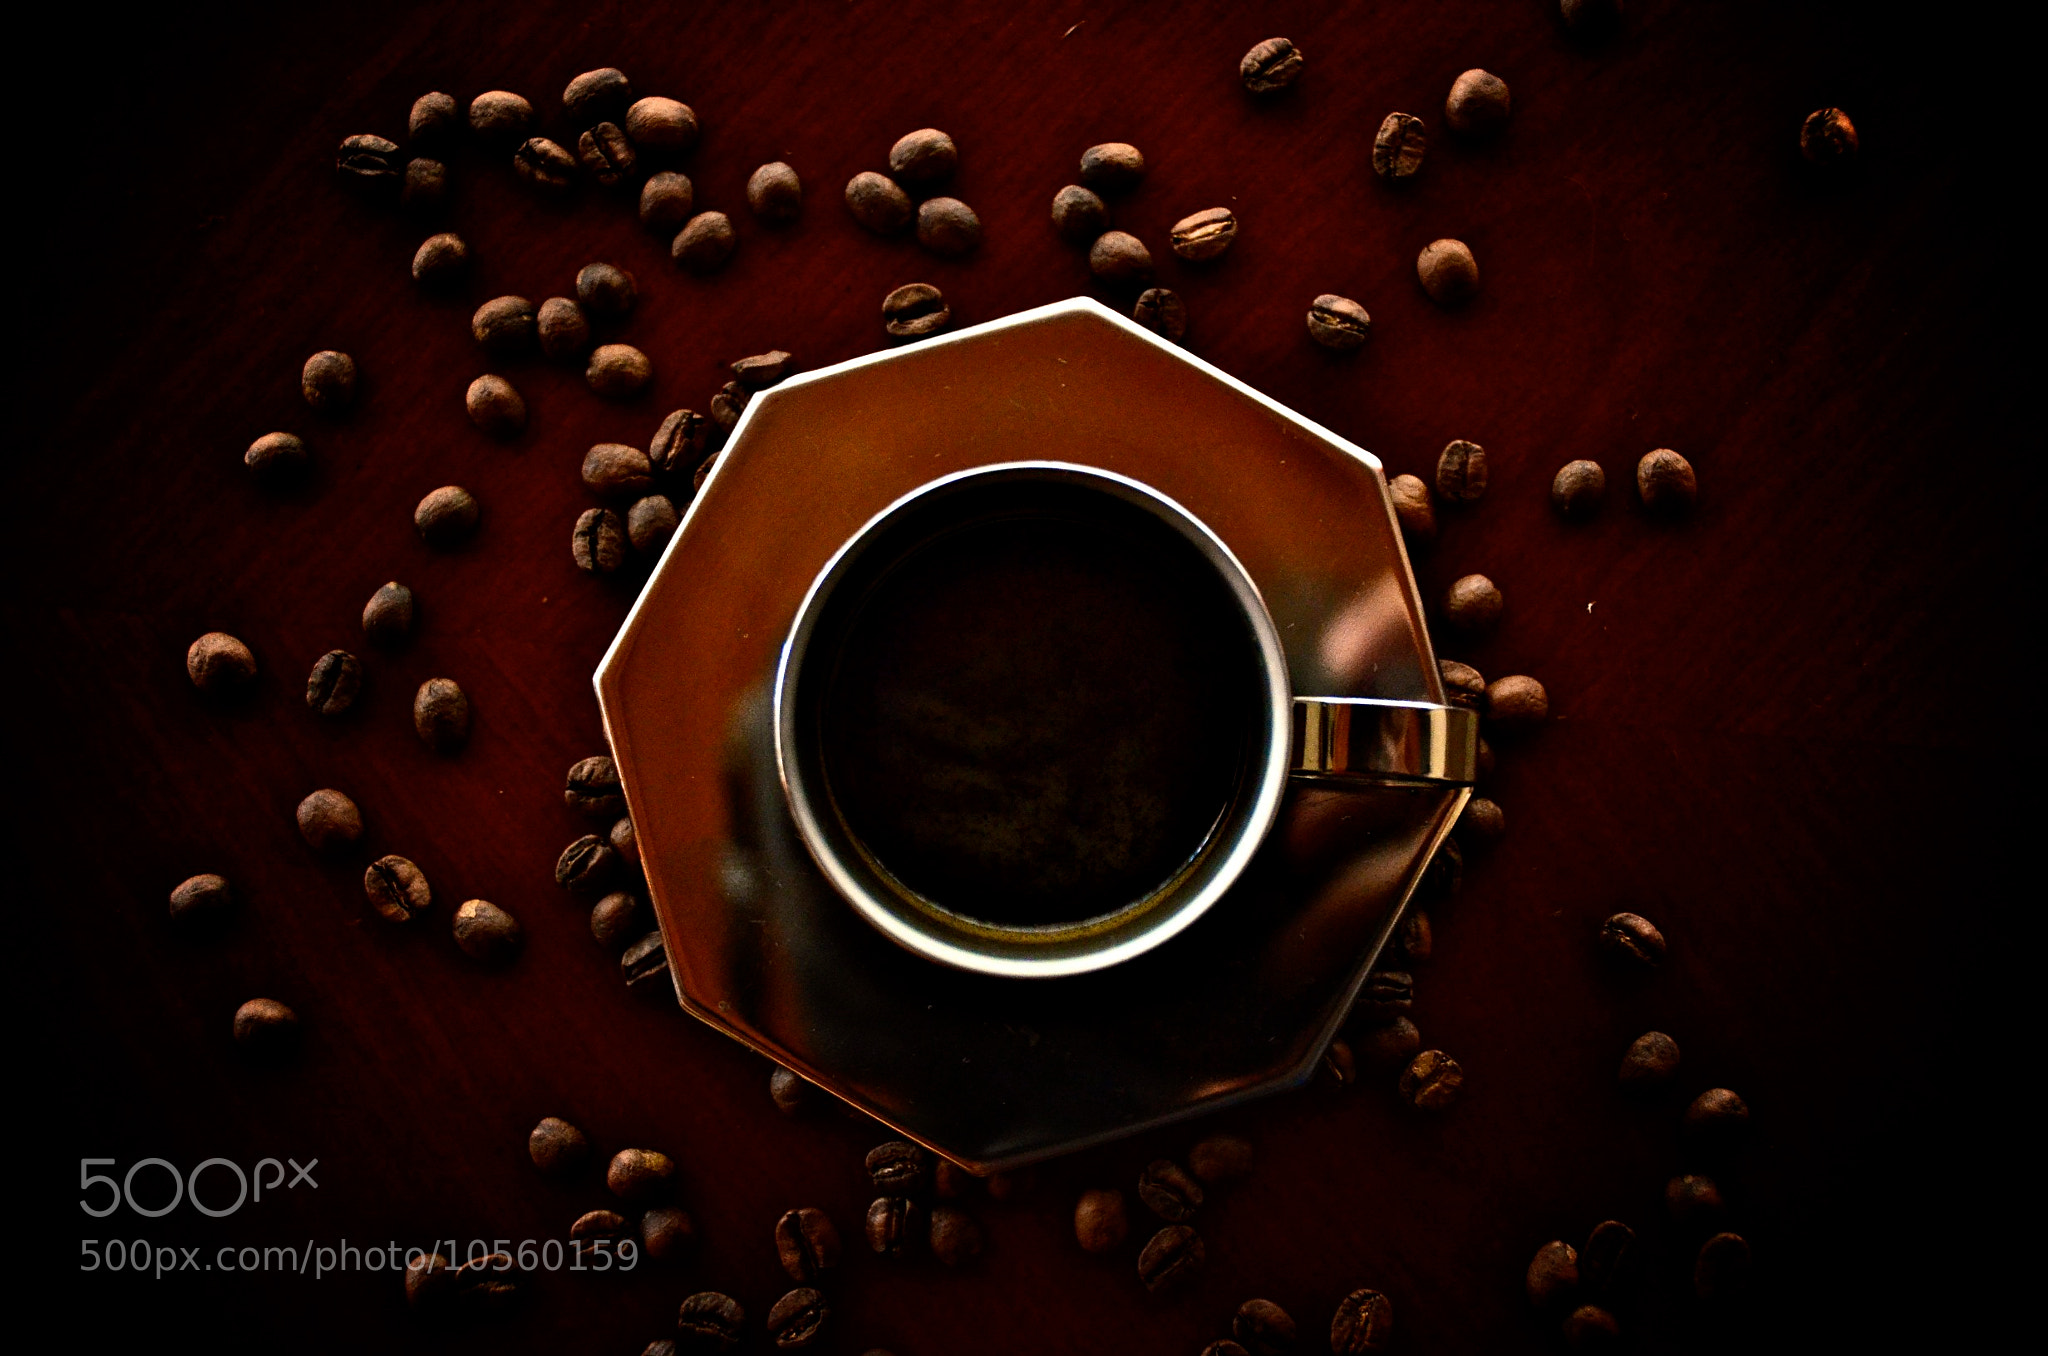 Photograph Coffee Time by Illya Garkavyy on 500px